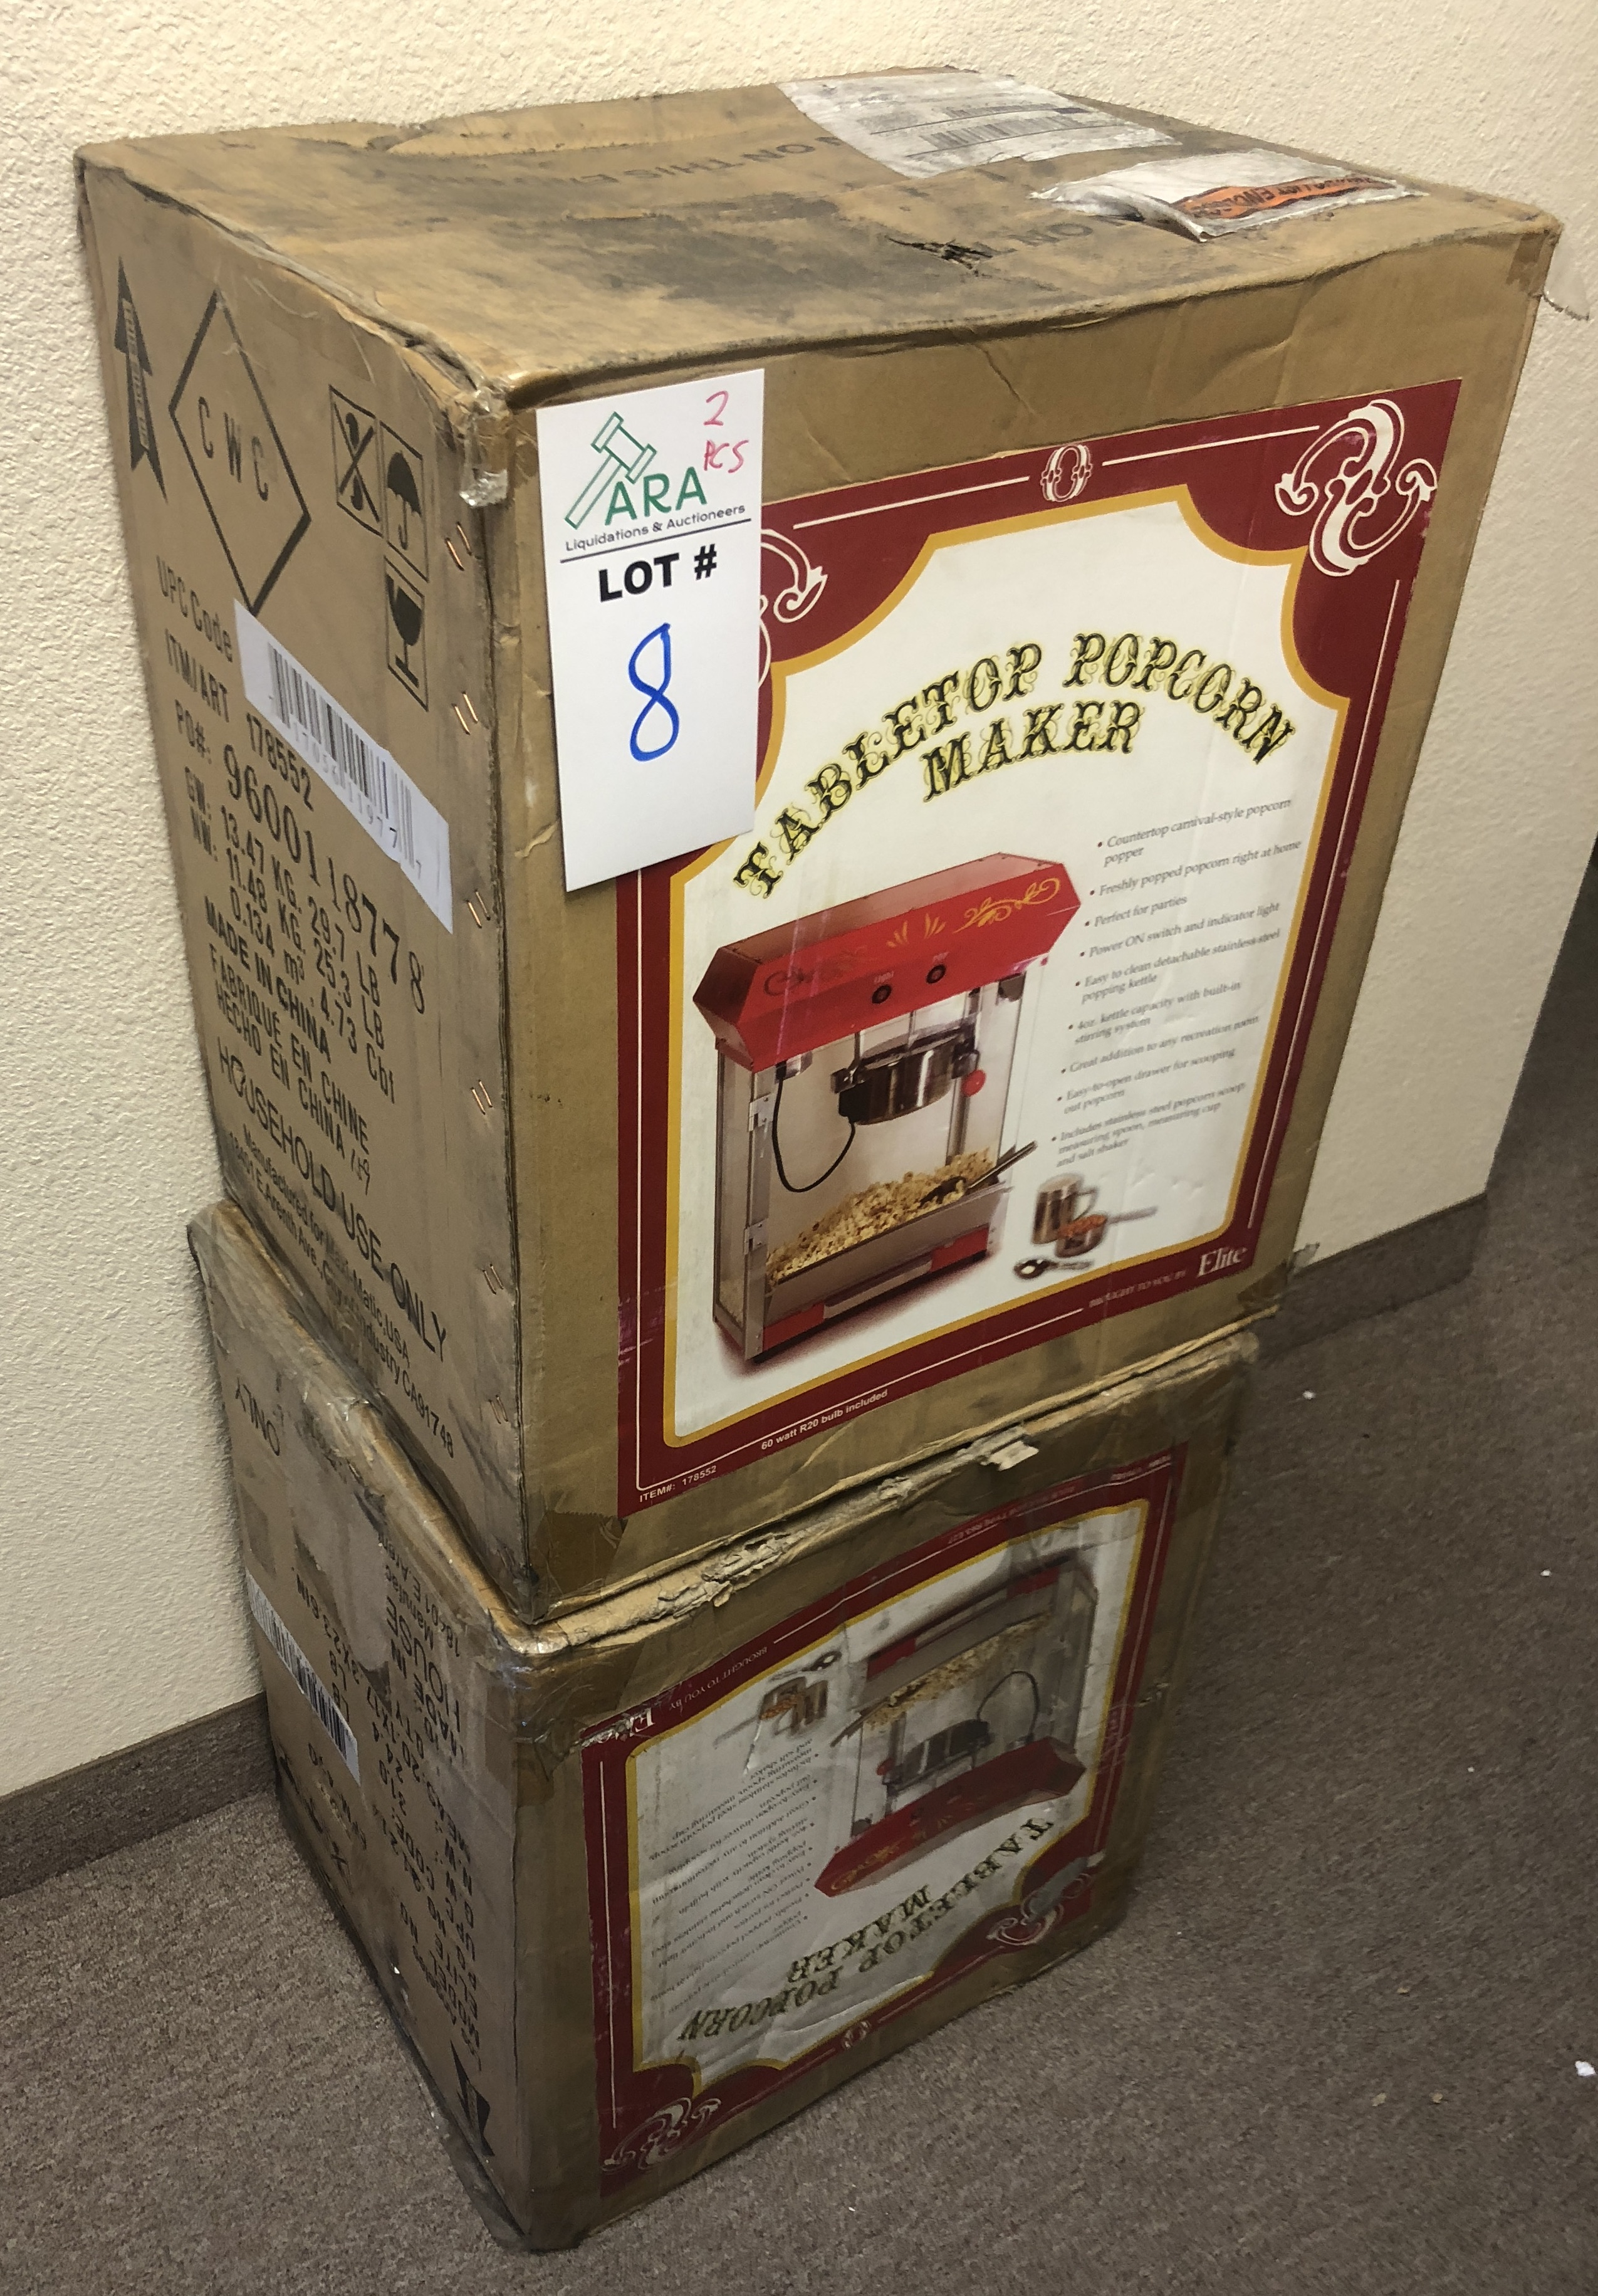 Lot 8 - 2 X ELITE TABLE TOP POPCORN MAKERS FROM BEST BUY